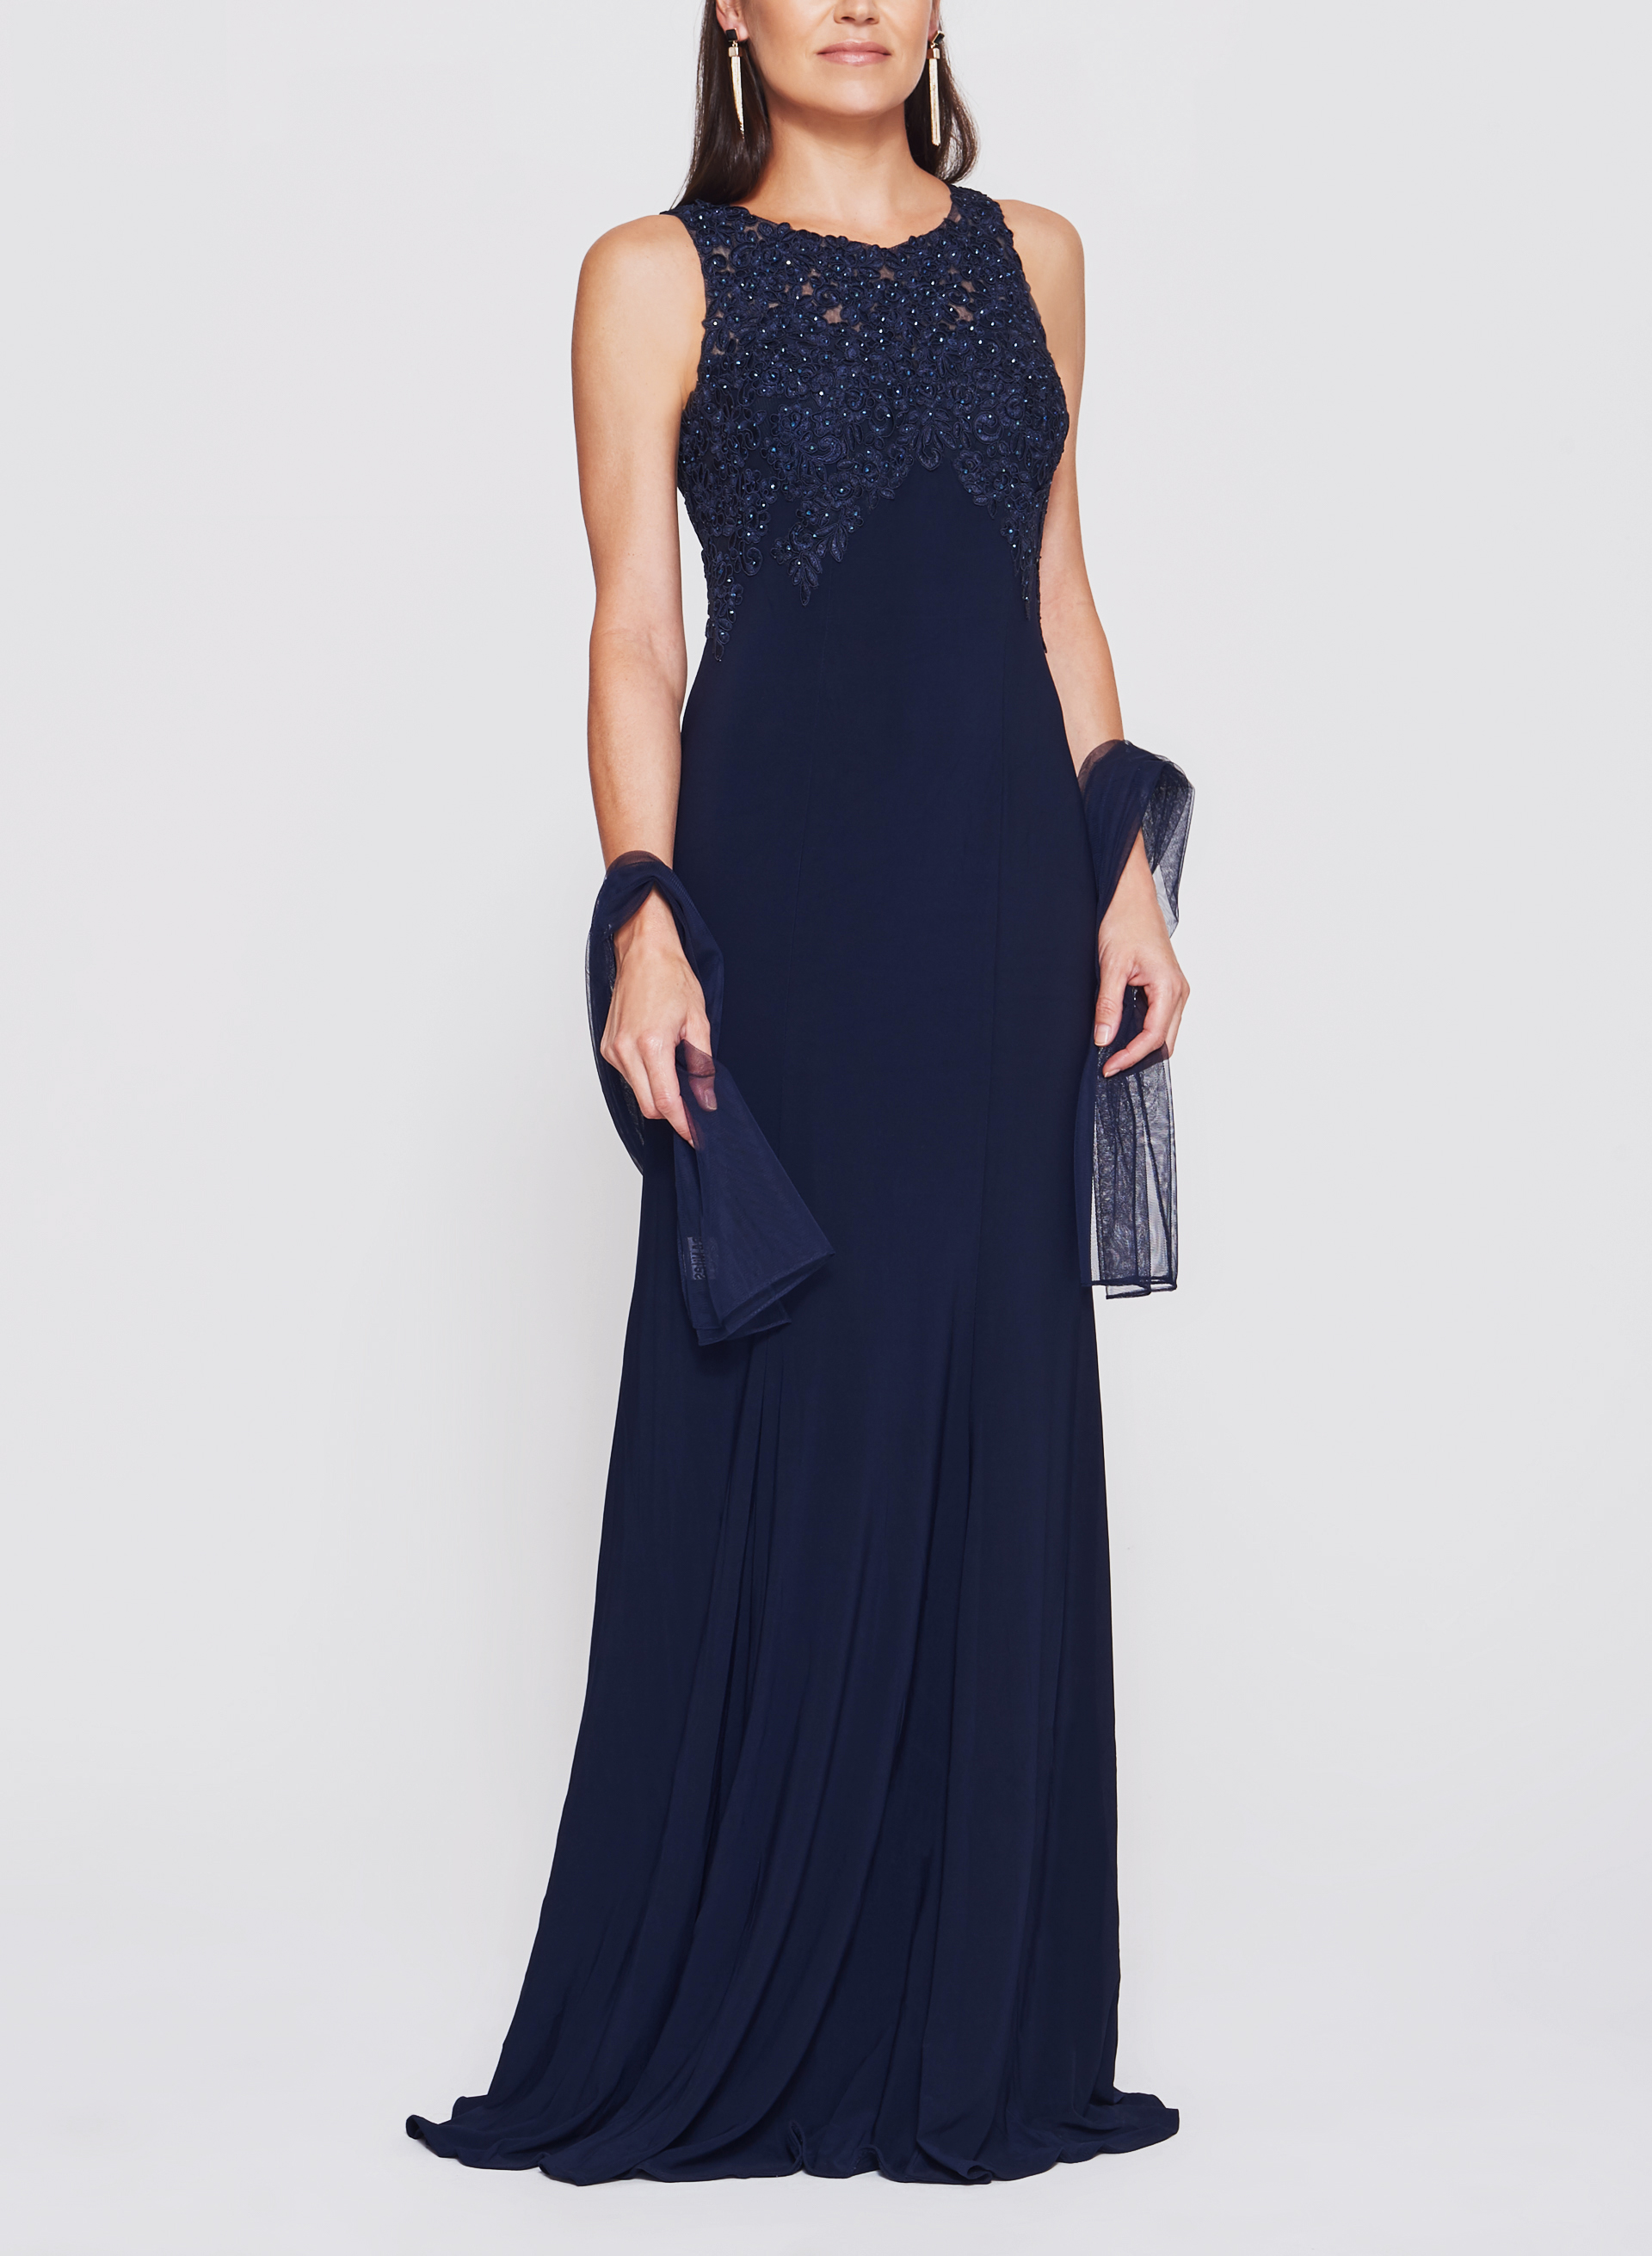 BA Nites - Rhinestone Embroidered Jersey Gown, Blue, hi-res